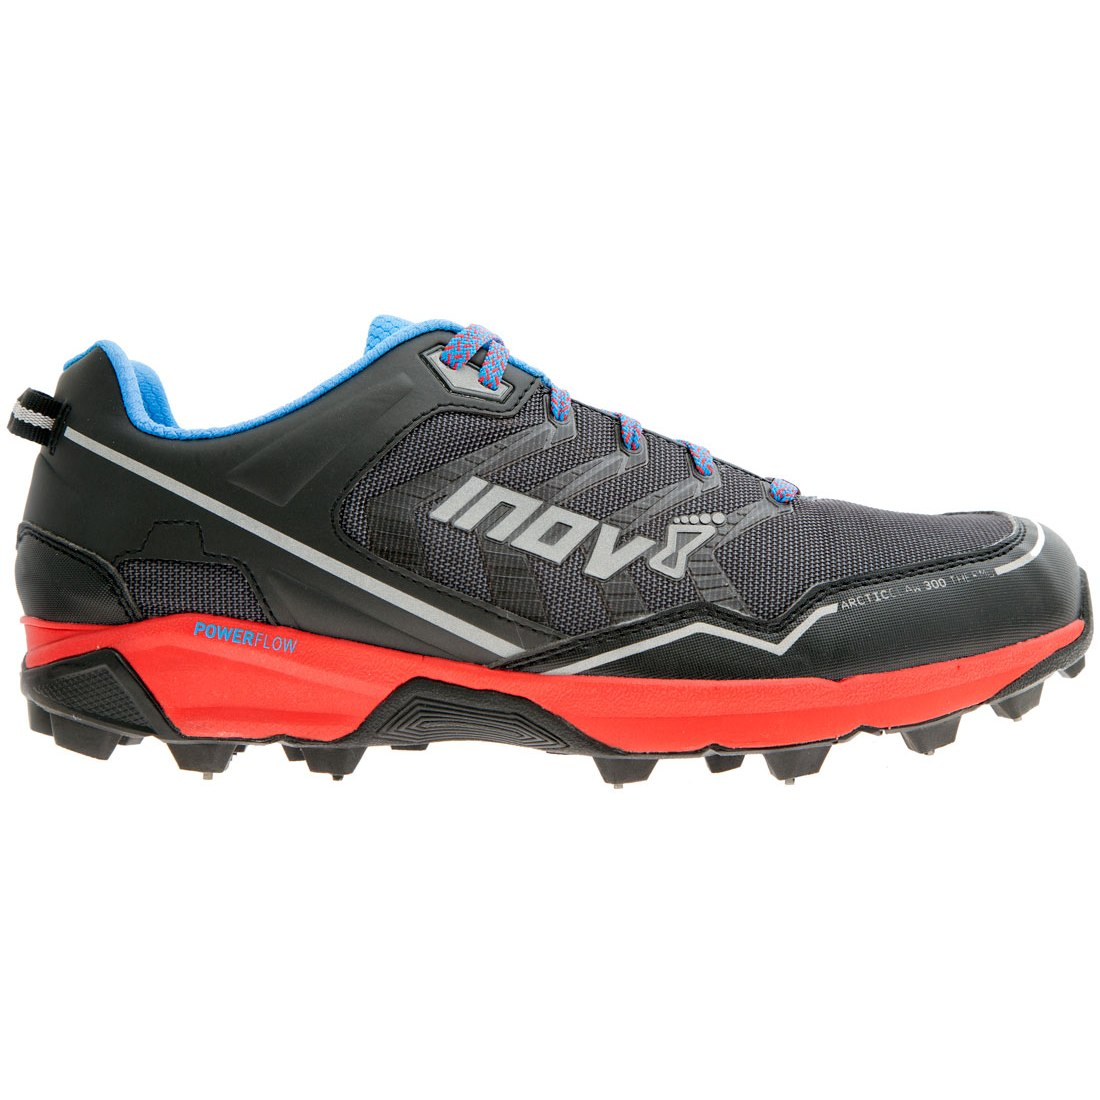 INOV-8 Arctic Claw 300 Thermo Trail Shoes ...